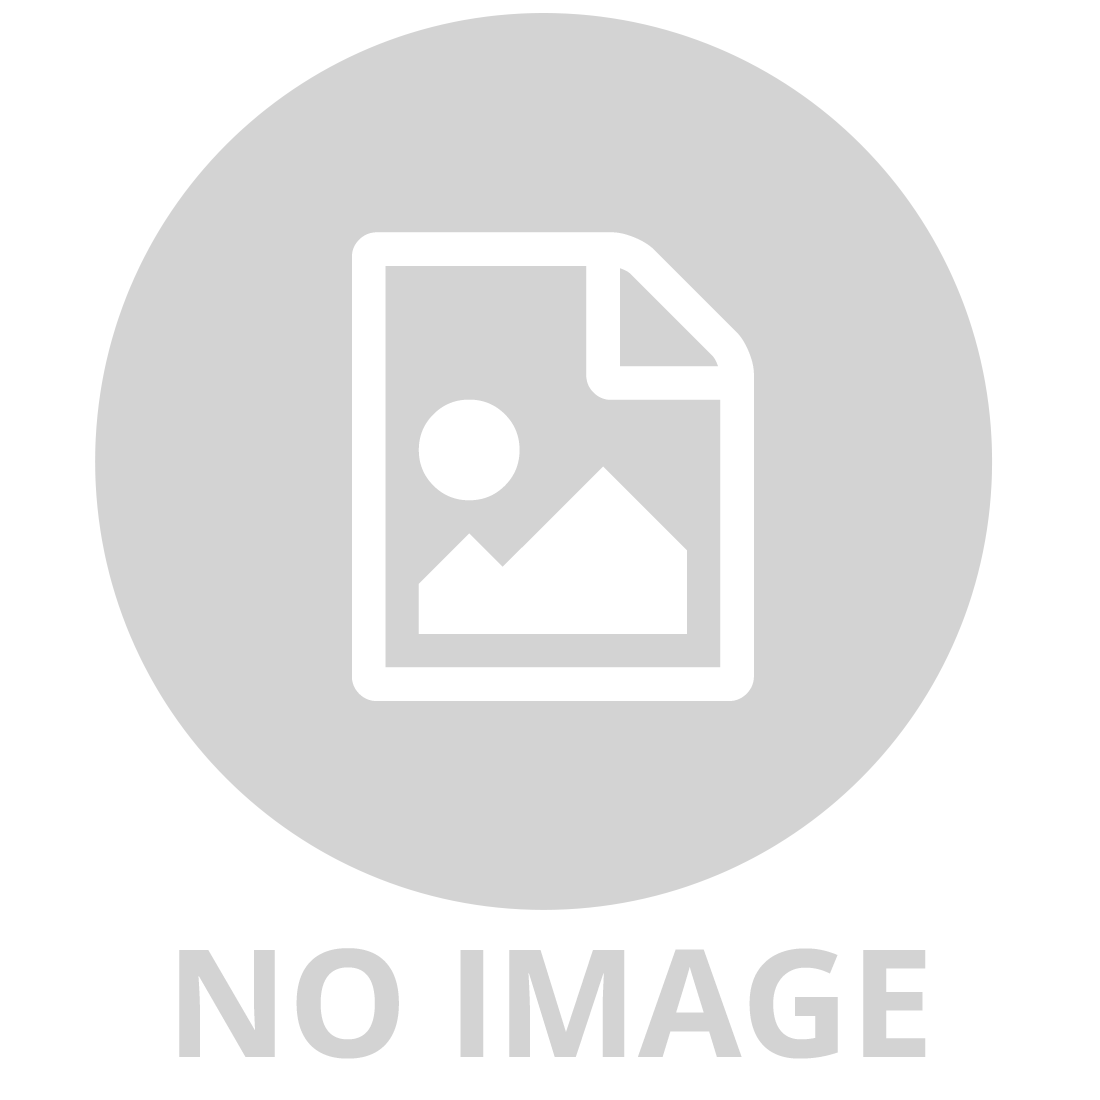 SYLVANIAN FAMILIES KITCHEN STOVE SINK AND COUNTER SET